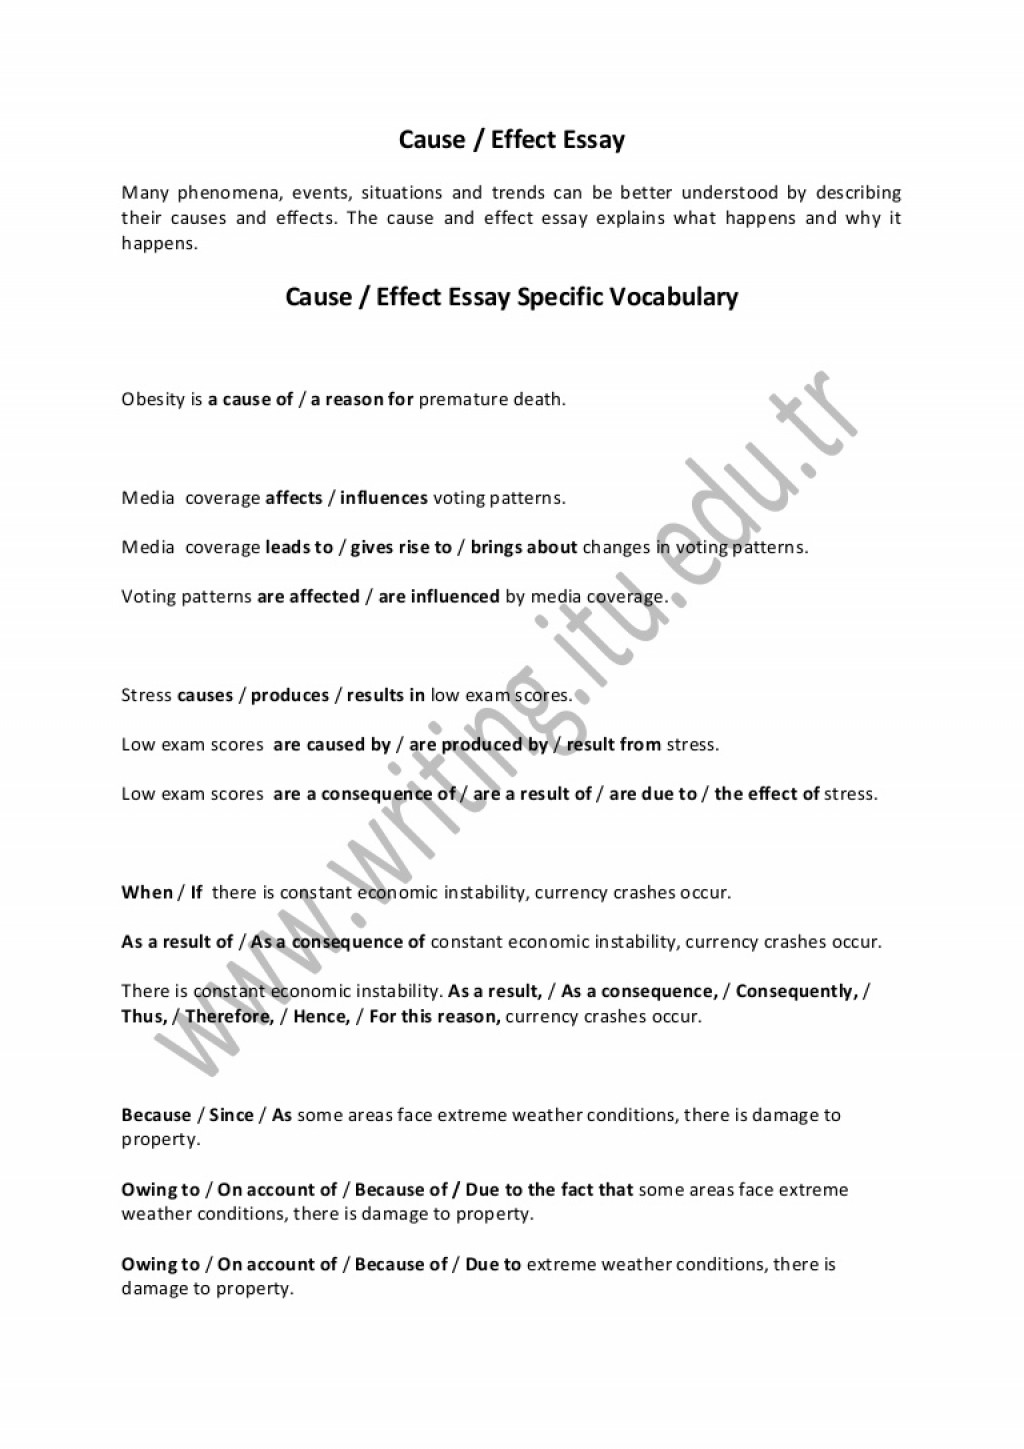 009 Cause And Effect Essay Outline Example Causeandeffectessay Thumbnail Rare Template Pdf On Divorce Large